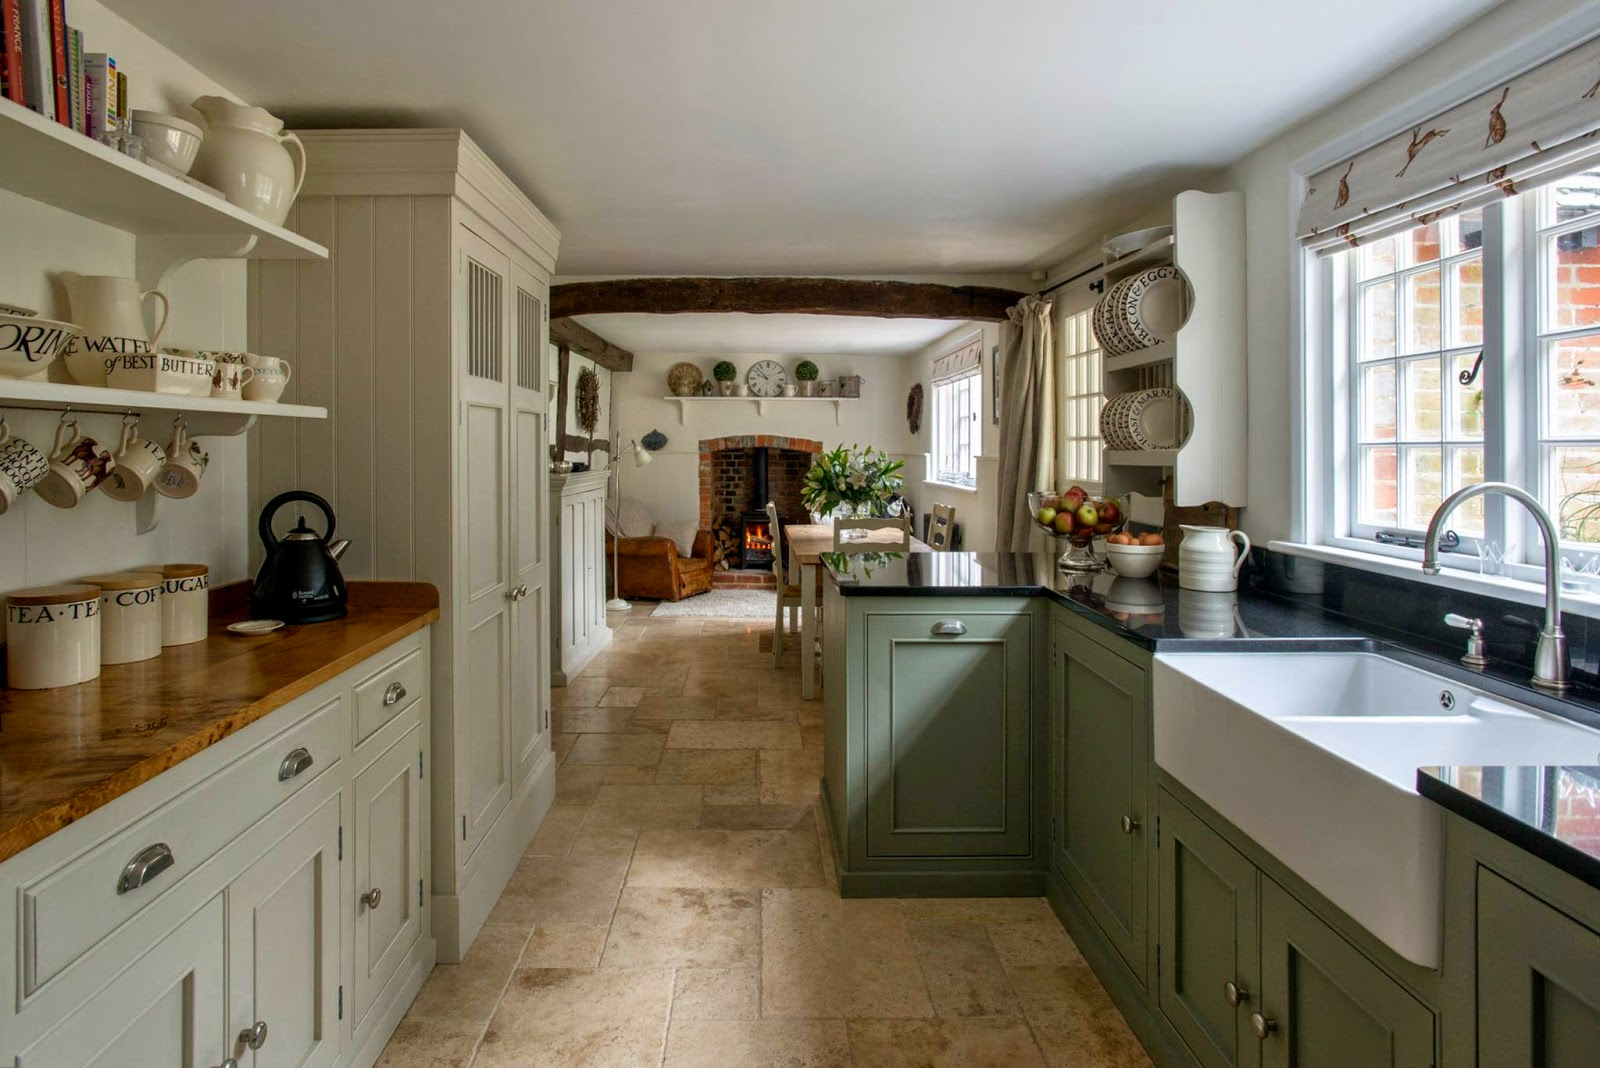 Country Style Kitchens Images How To Blend Modern And Country Styles Within Your Home 39s